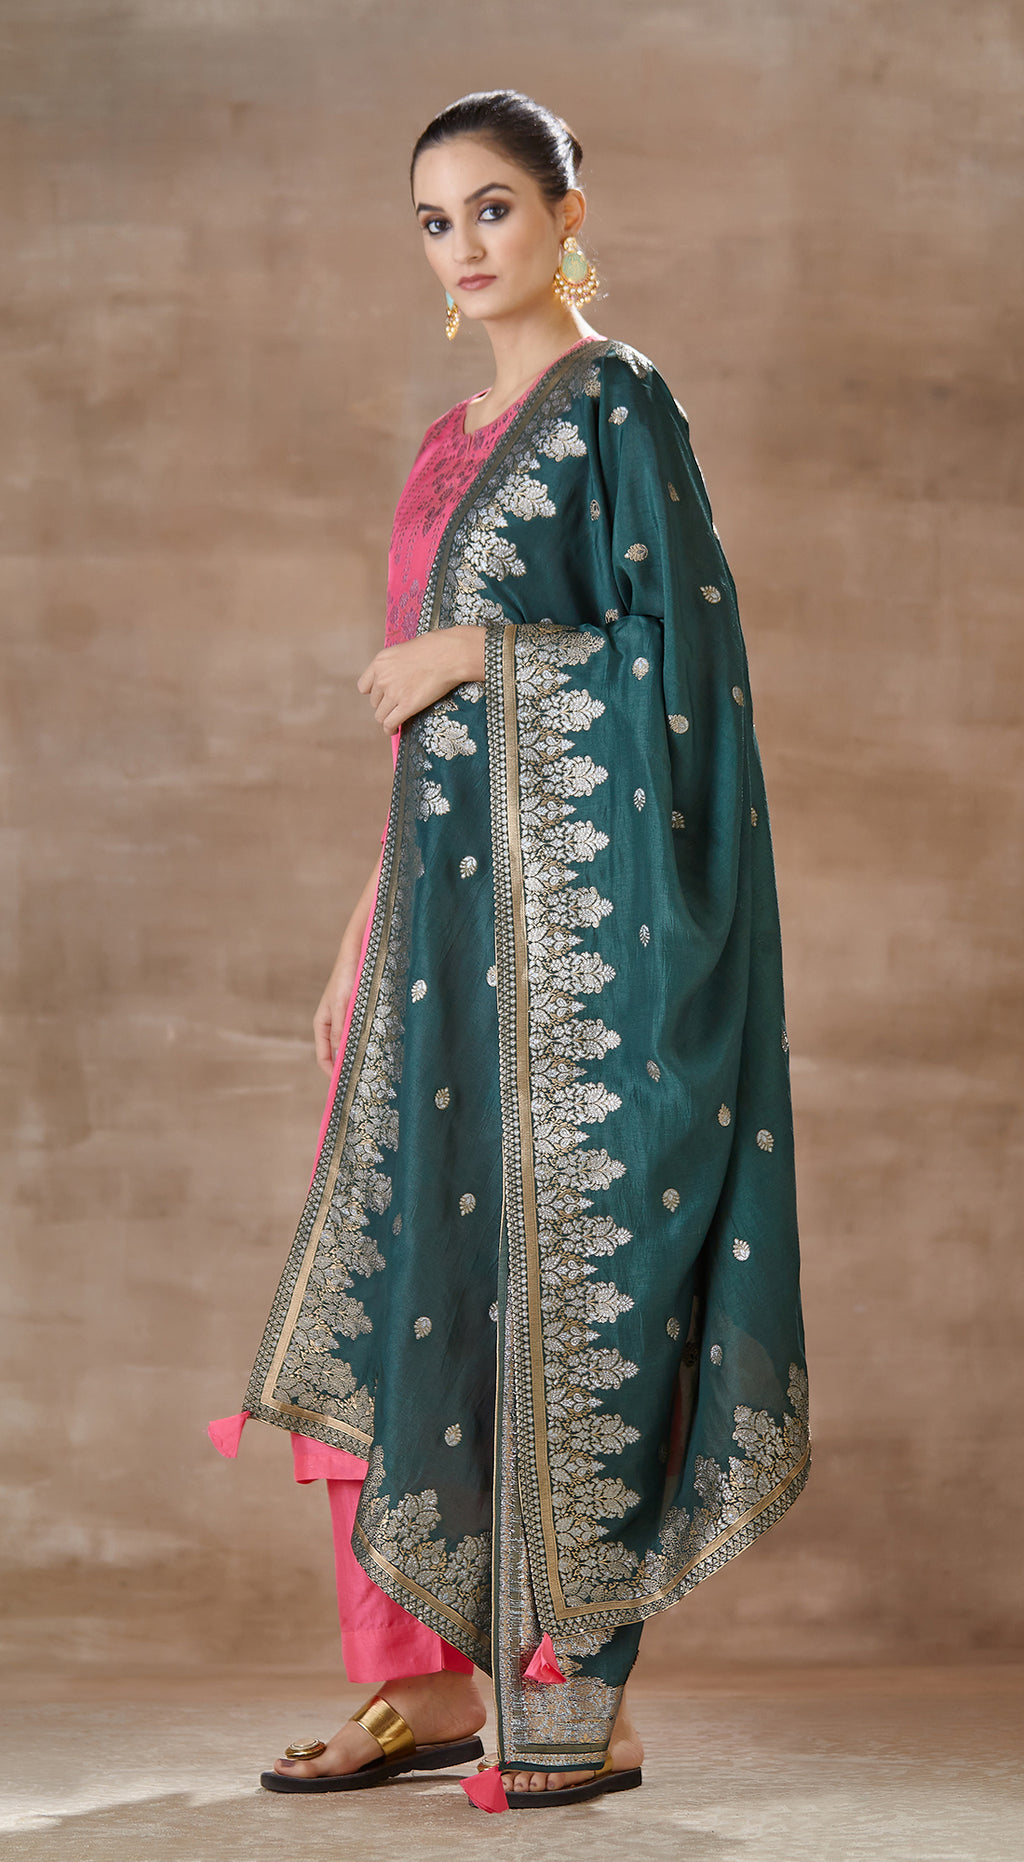 Rani pink with bottle green contrast banarsi dupatta sharara set